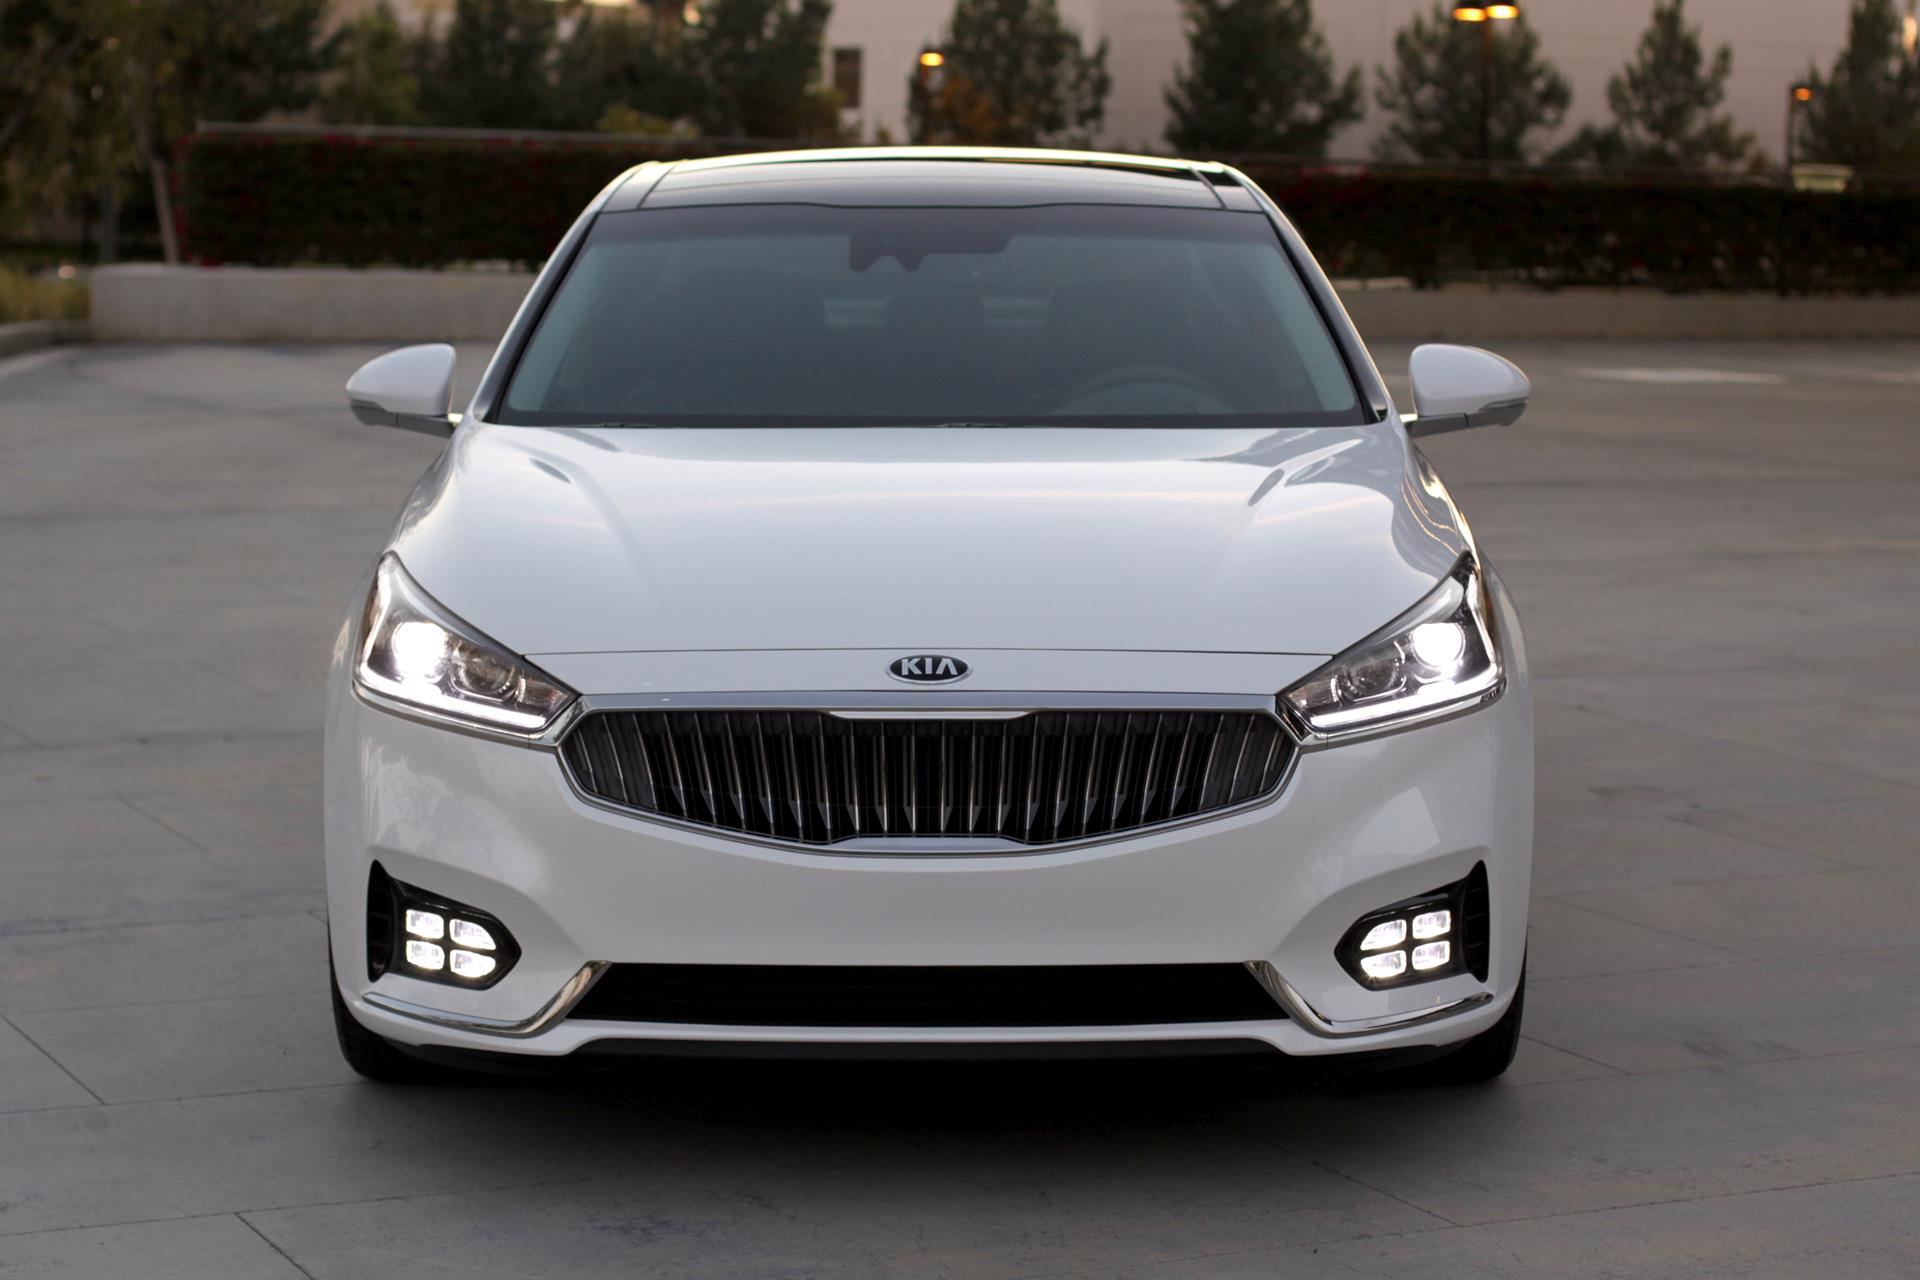 2017 kia cadenza technical specifications and data engine dimensions and mechanical details. Black Bedroom Furniture Sets. Home Design Ideas